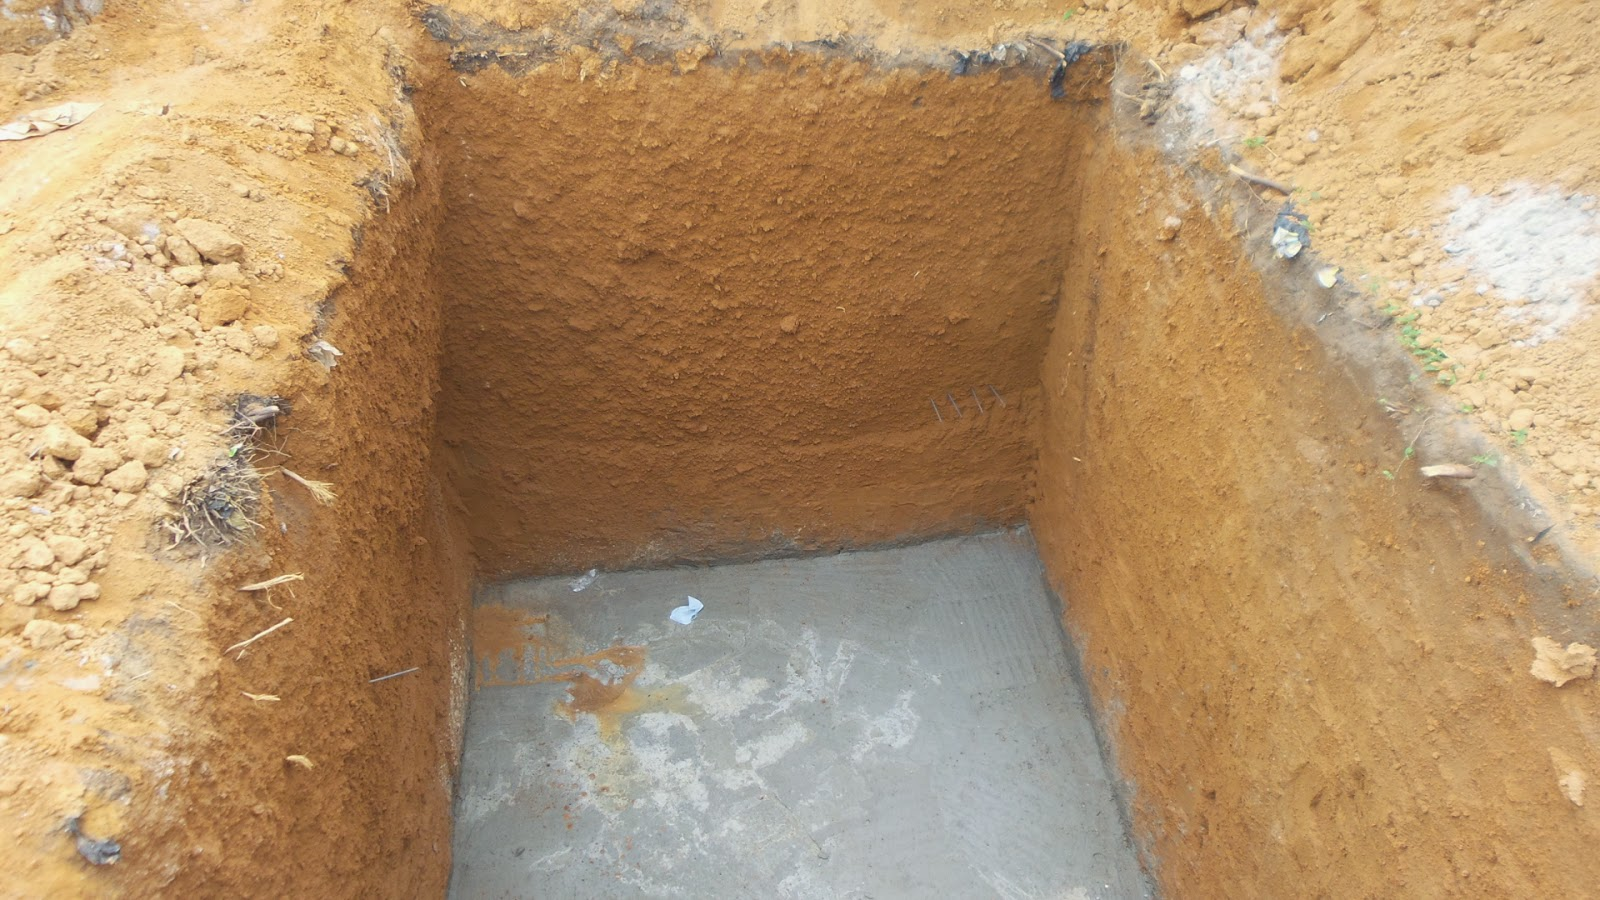 The anatomy of a soak away/septic tank pit | amazing viewpoints